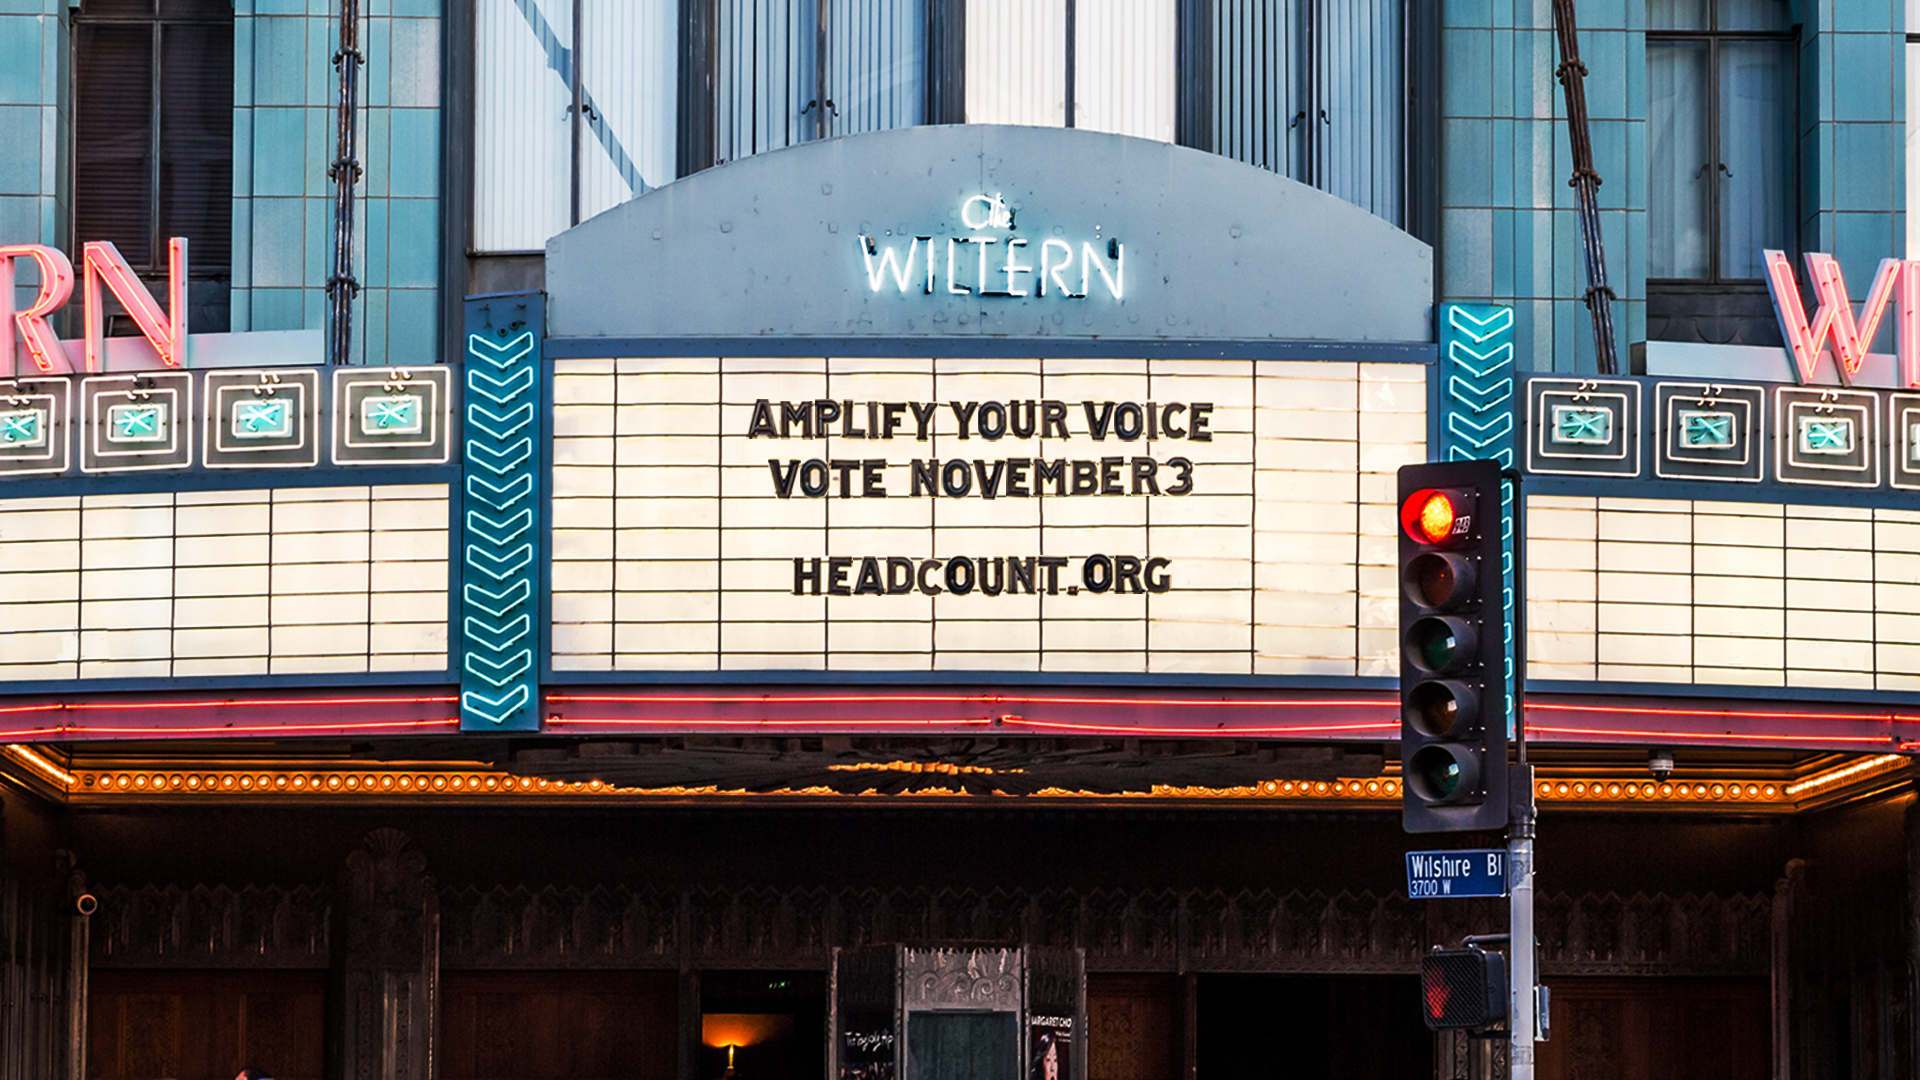 """The marquee sign at the Wiltern in Koreatown reads """"AMPLIFY YOUR VOICE / VOTE NOVEMBER 3 / HEADCOUNT.ORG"""" in a photo provided by Live Nation on Sept. 16, 2020."""